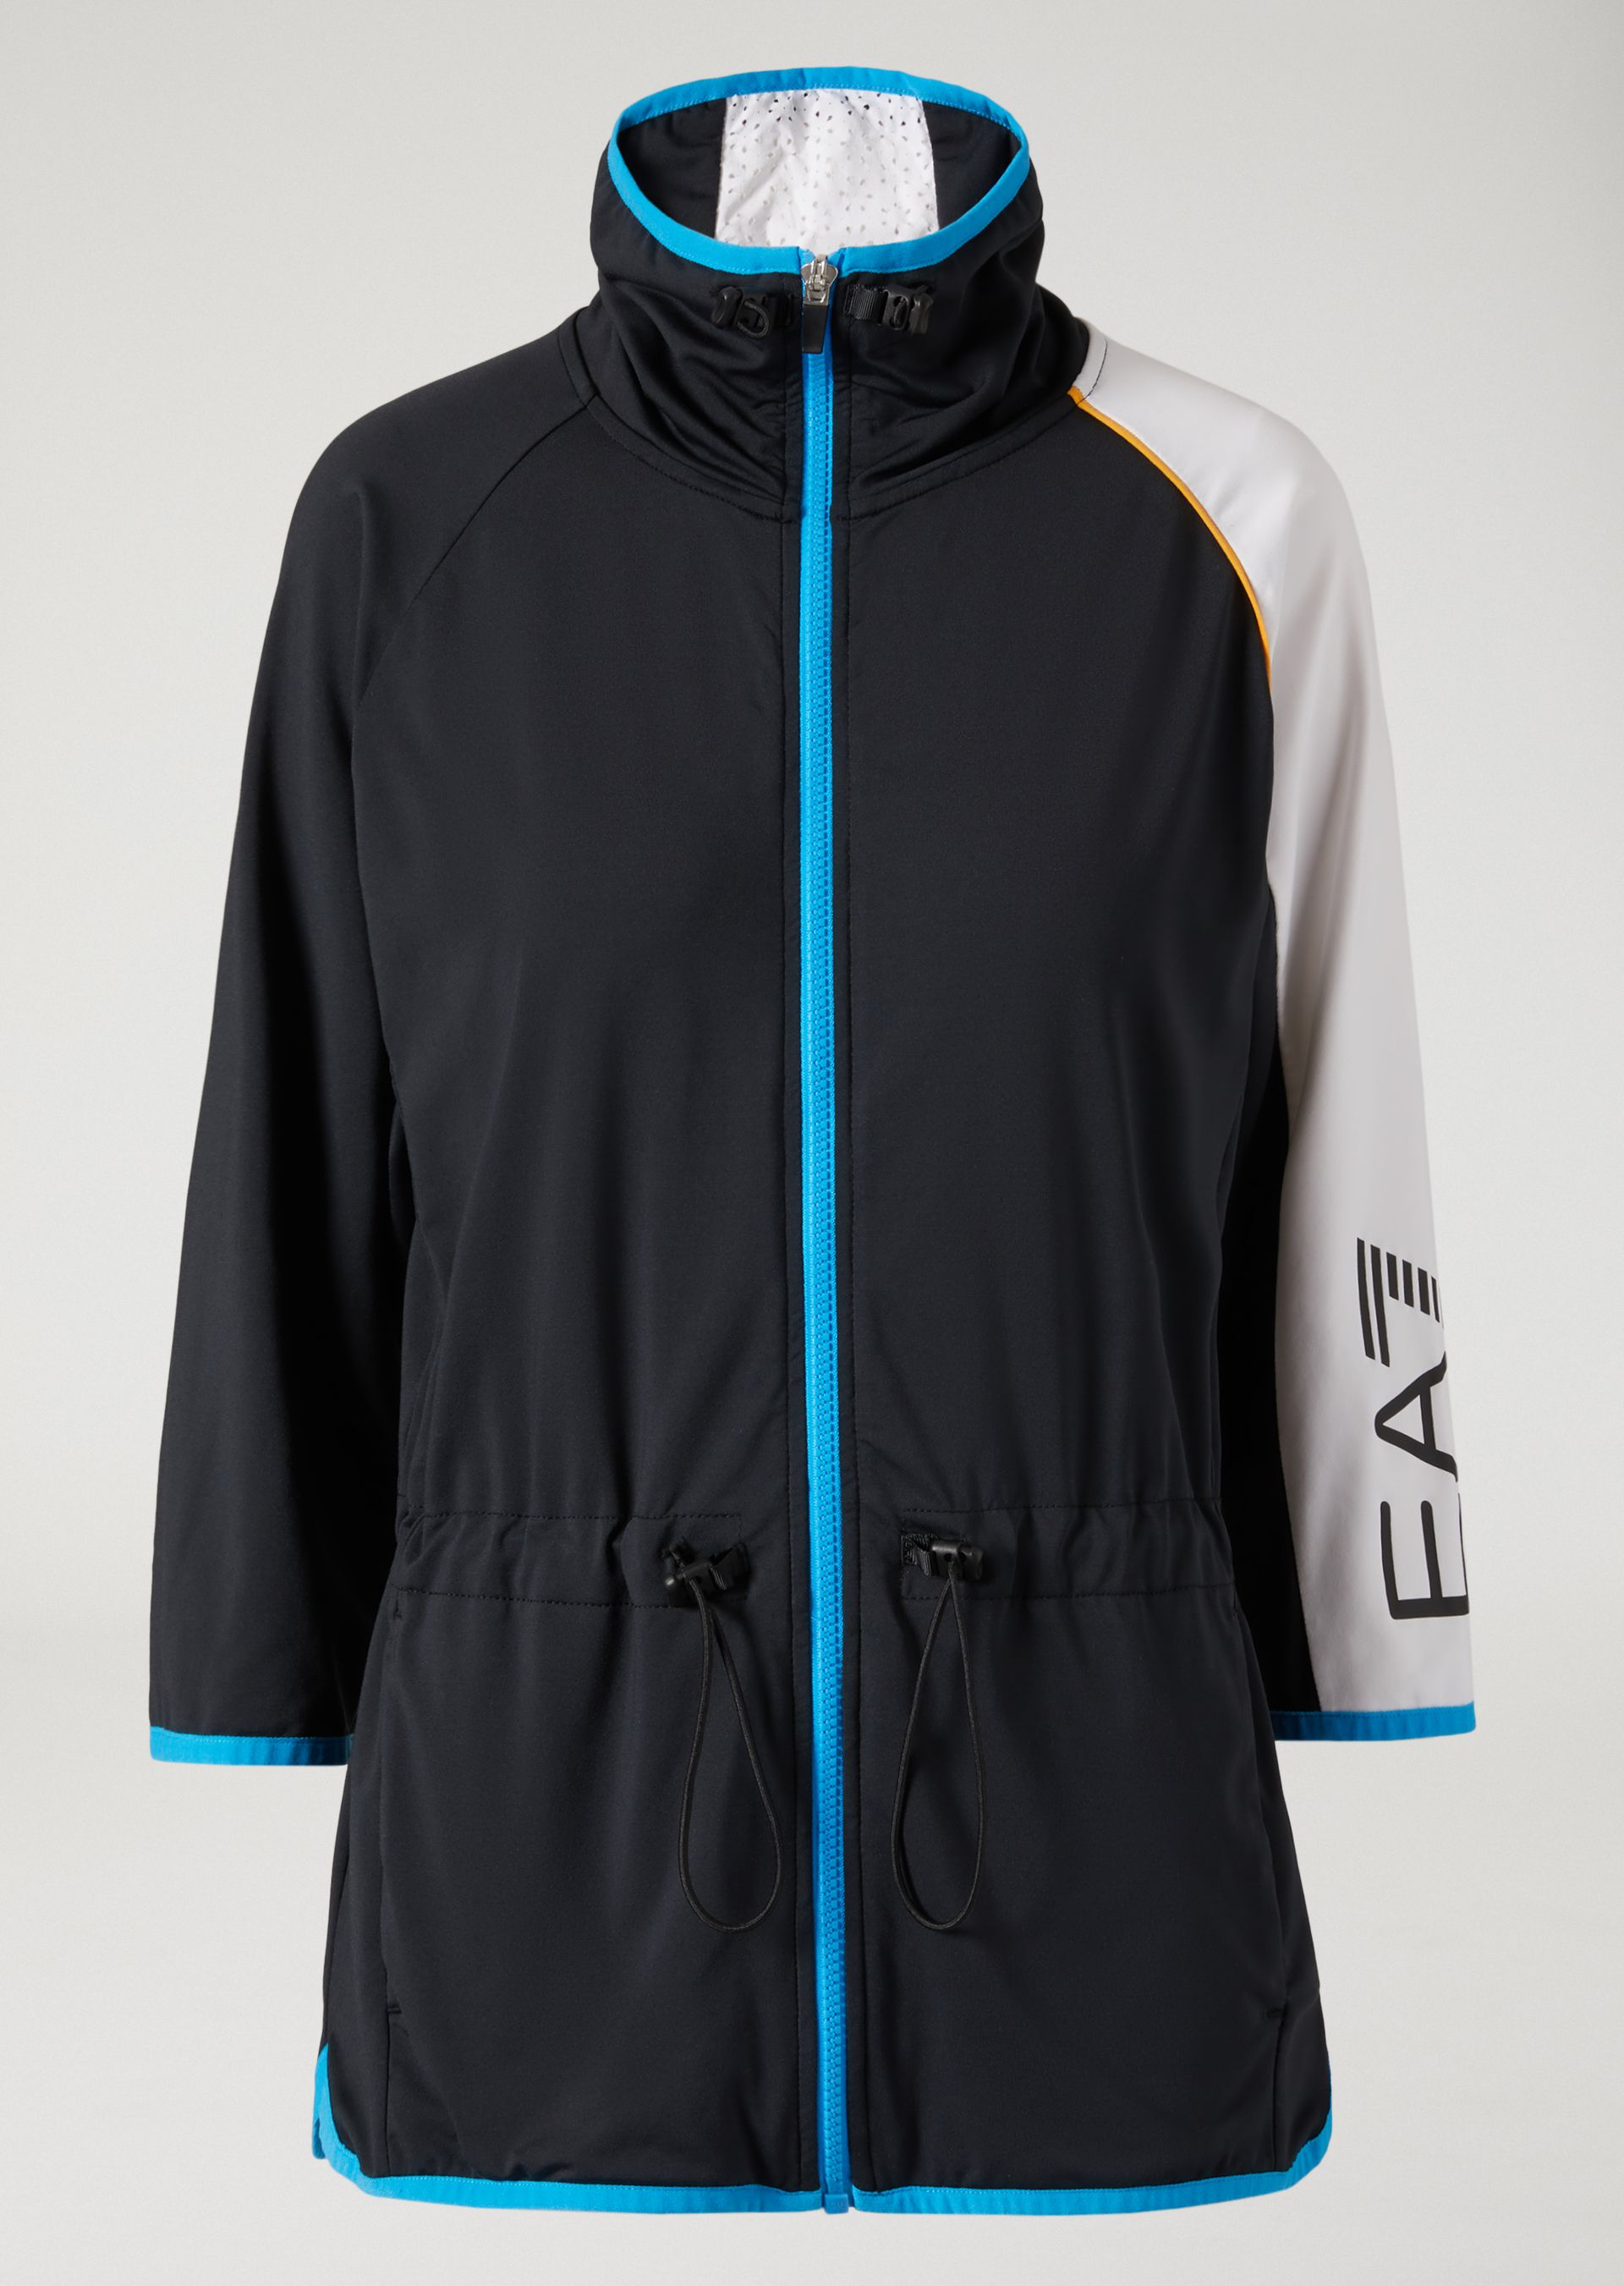 cheap ea7 tracksuit womens